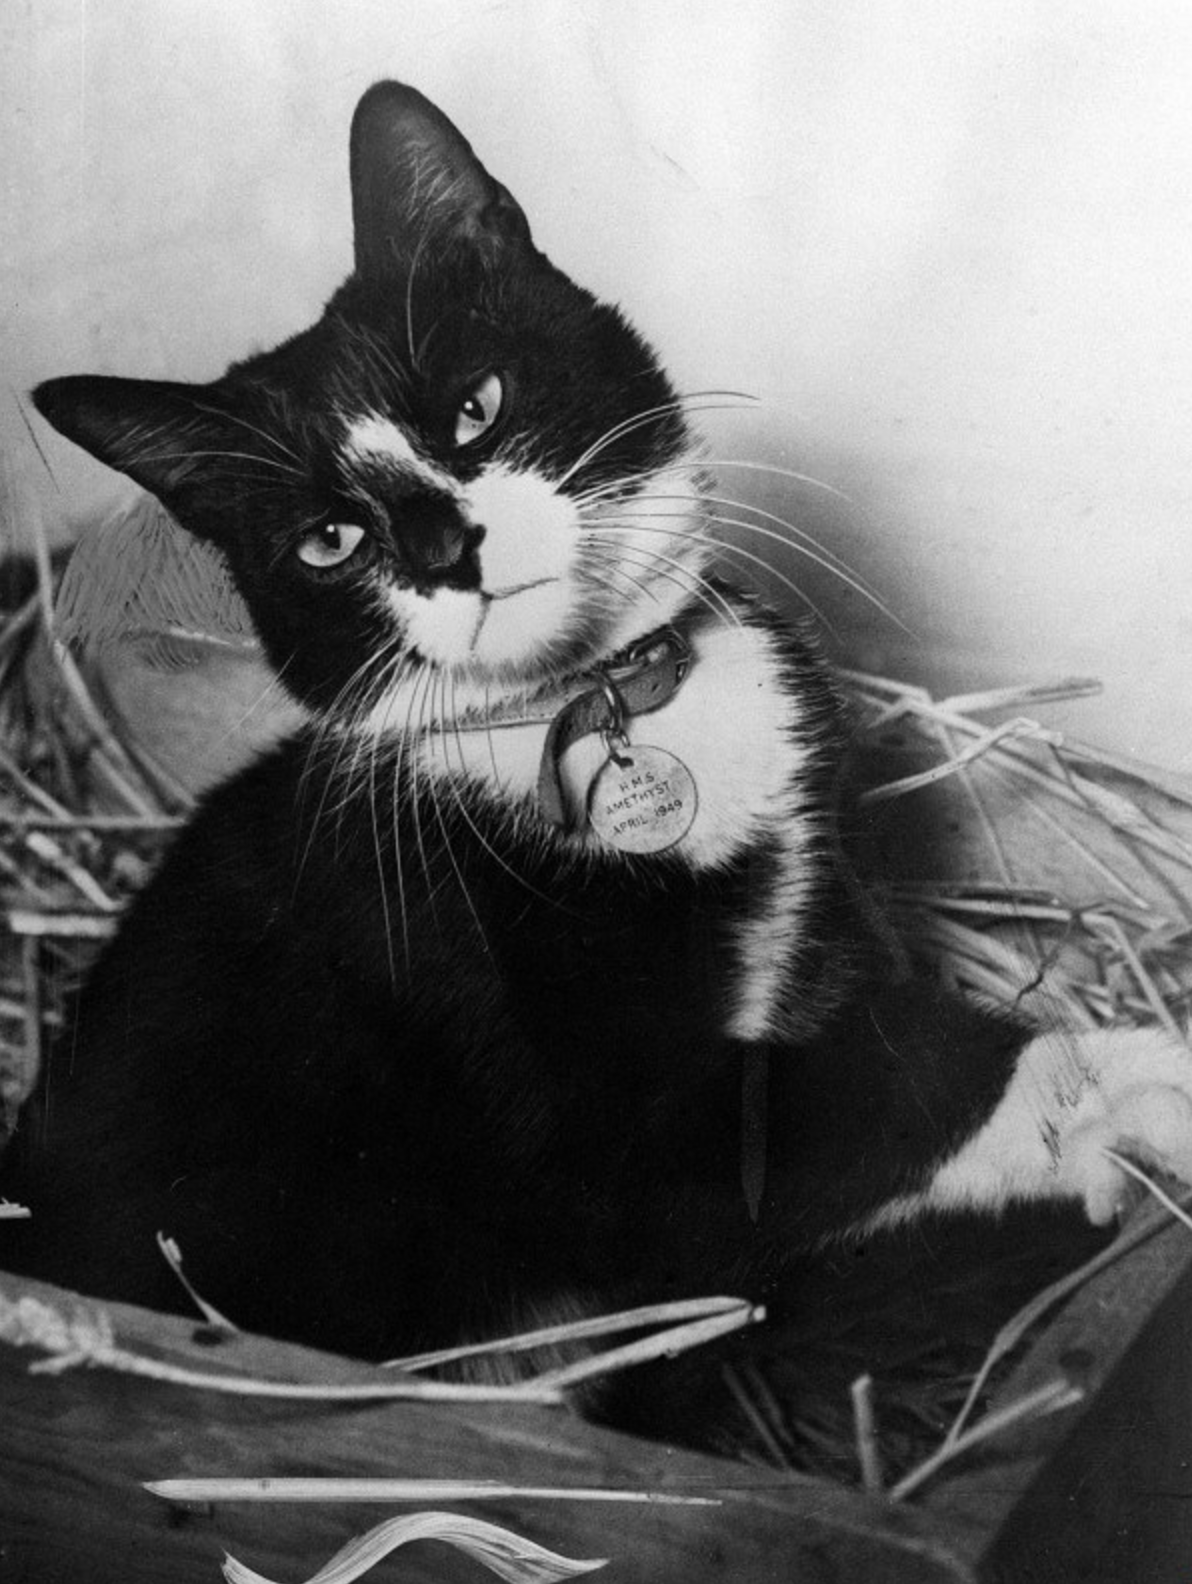 Simon, the ship's cat about the HMS Amethyst, with Dickin Medal, awarded for catching rats in wartime.